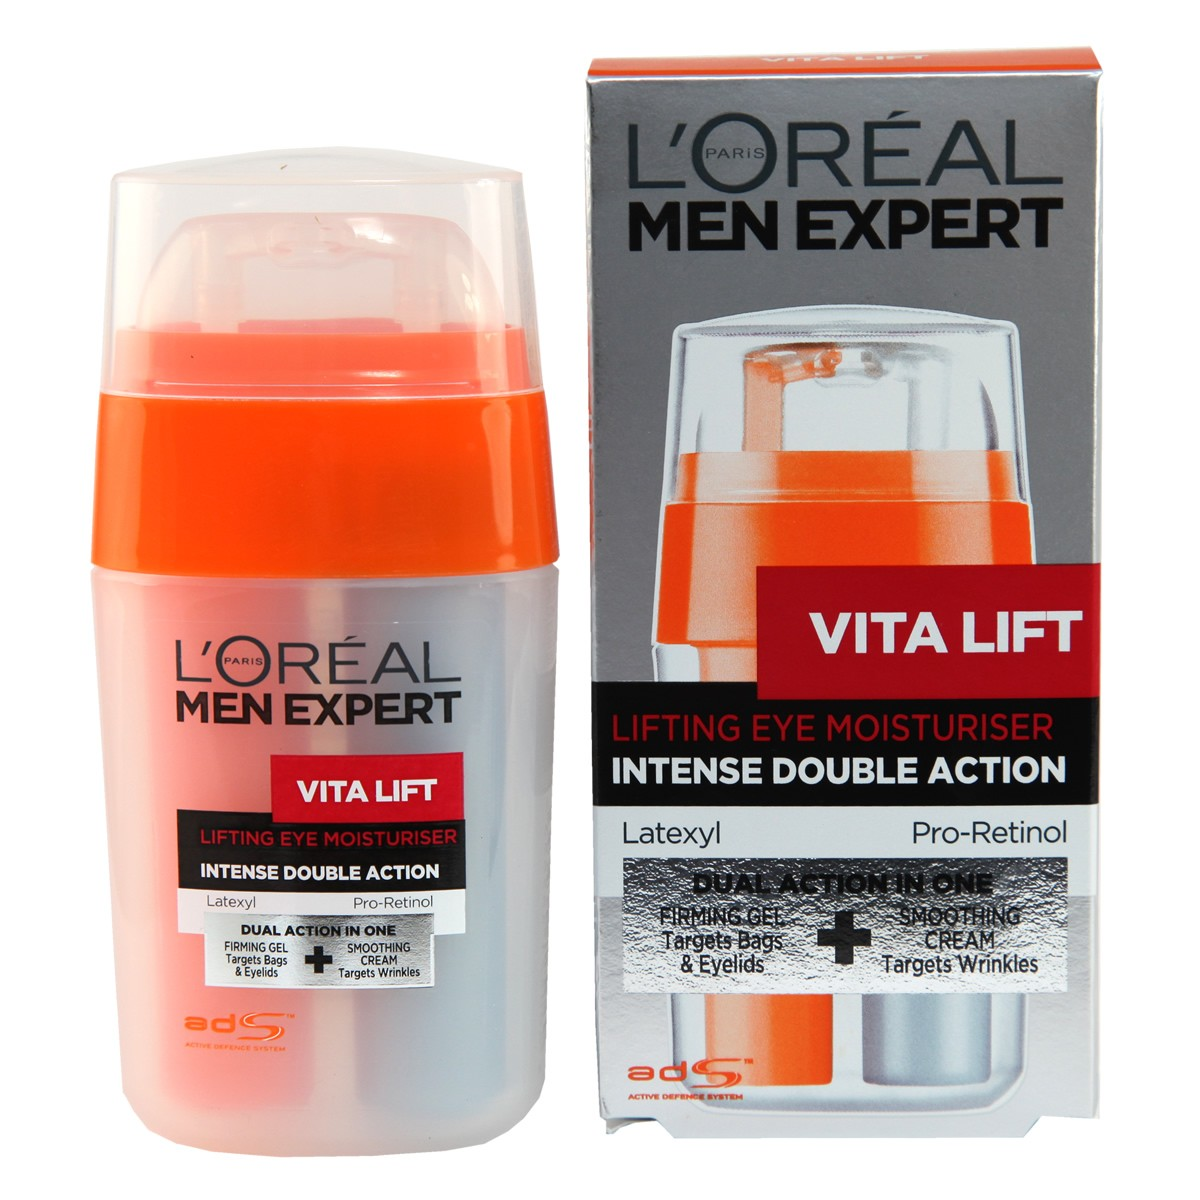 L'Oreal Paris Men Expert Vita Lift Double Action Lifting Eye Moisturiser